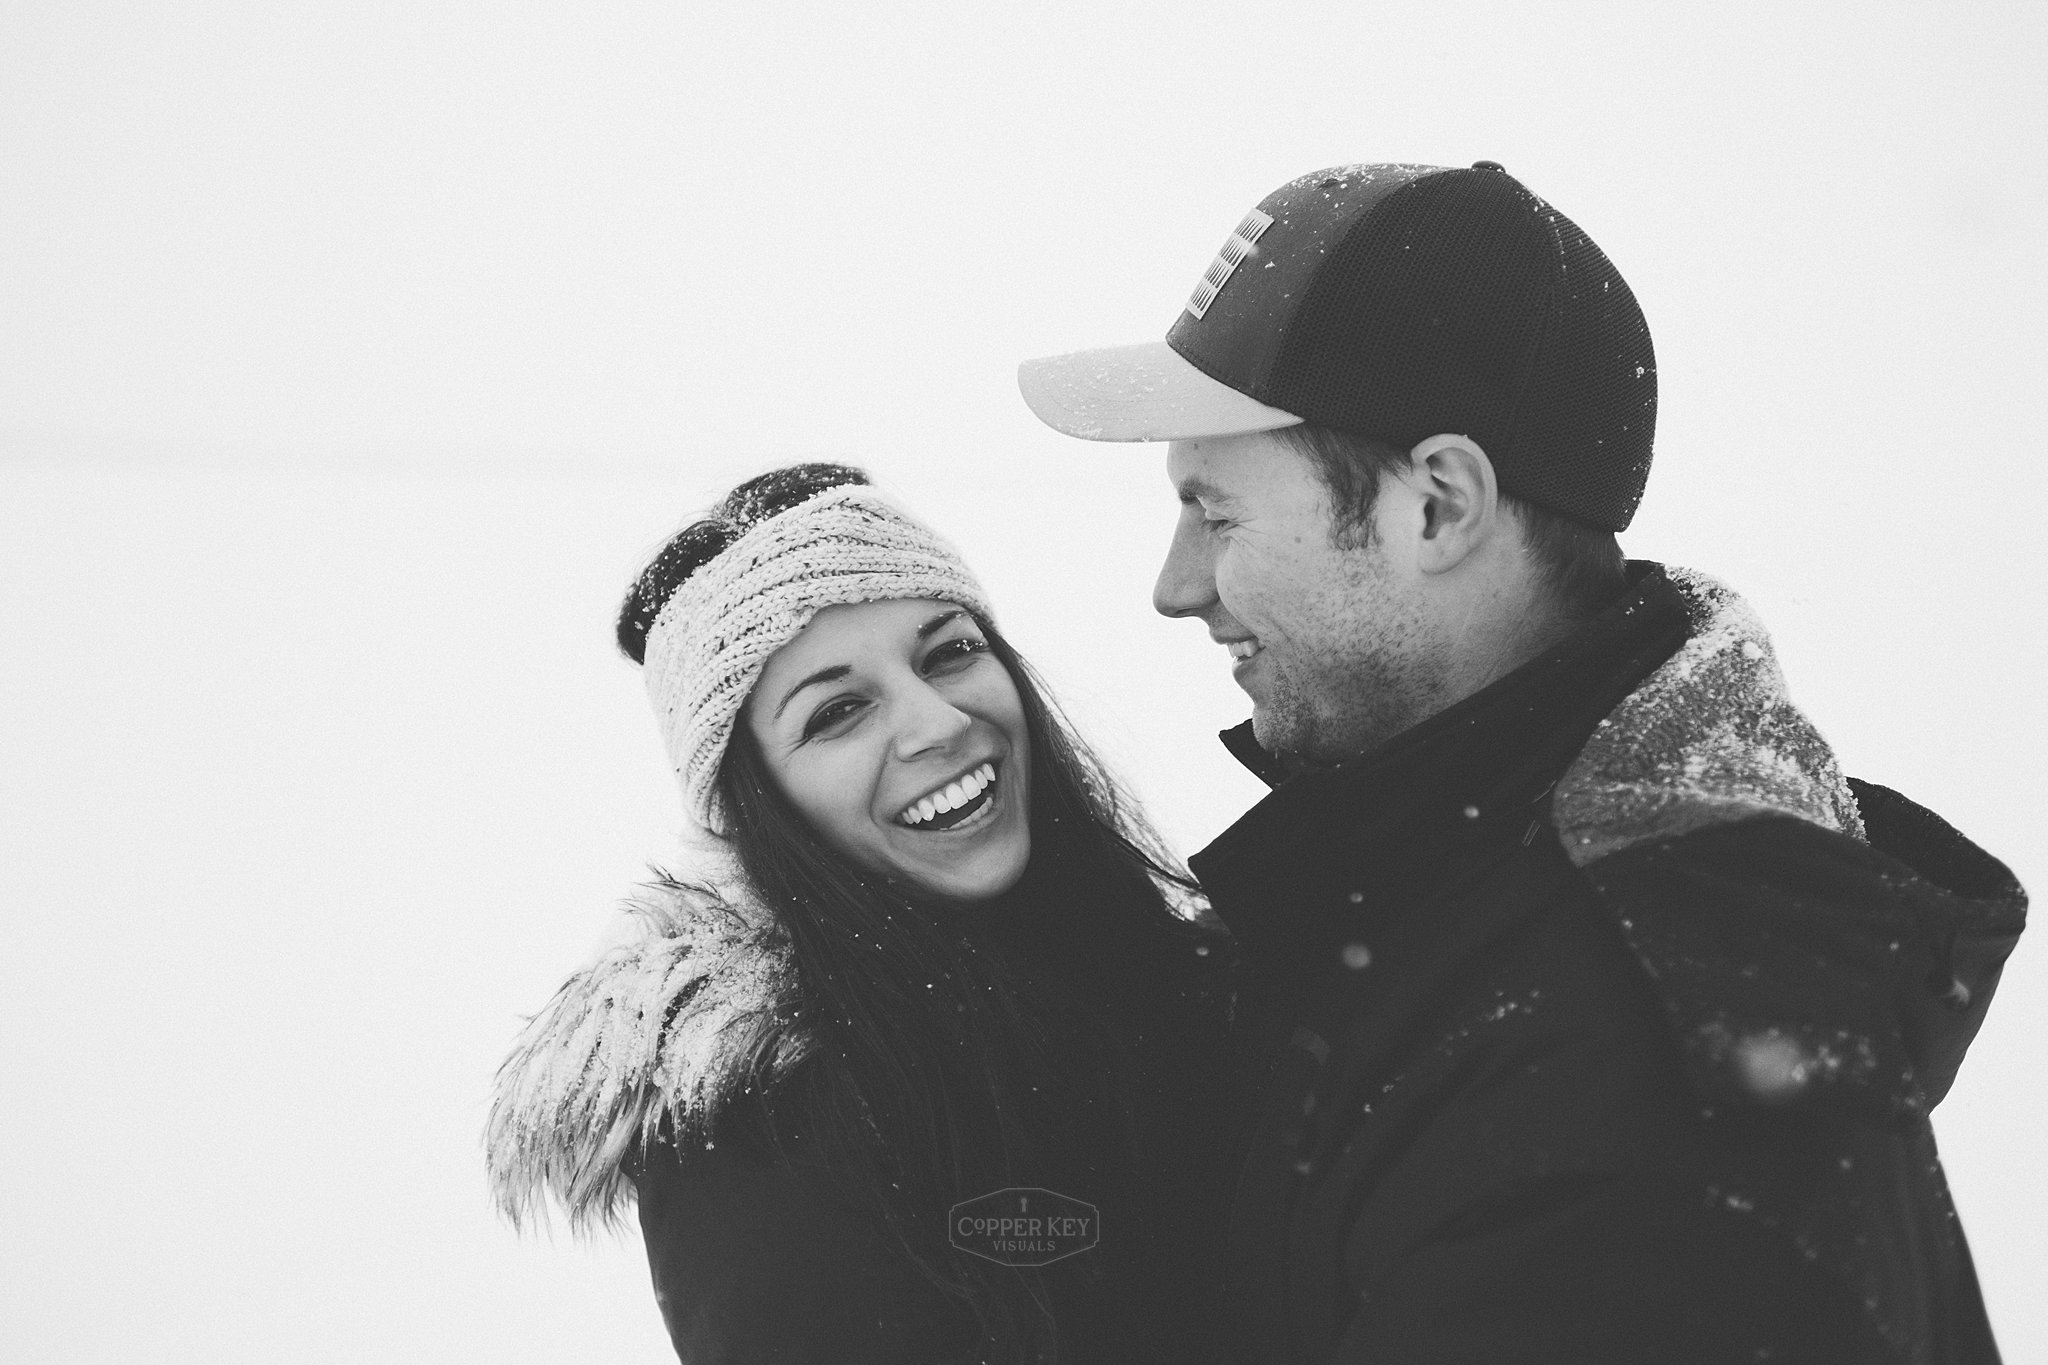 Copper Key Visuals Wisconsin Ice Fishing Engagement Session-14.jpg